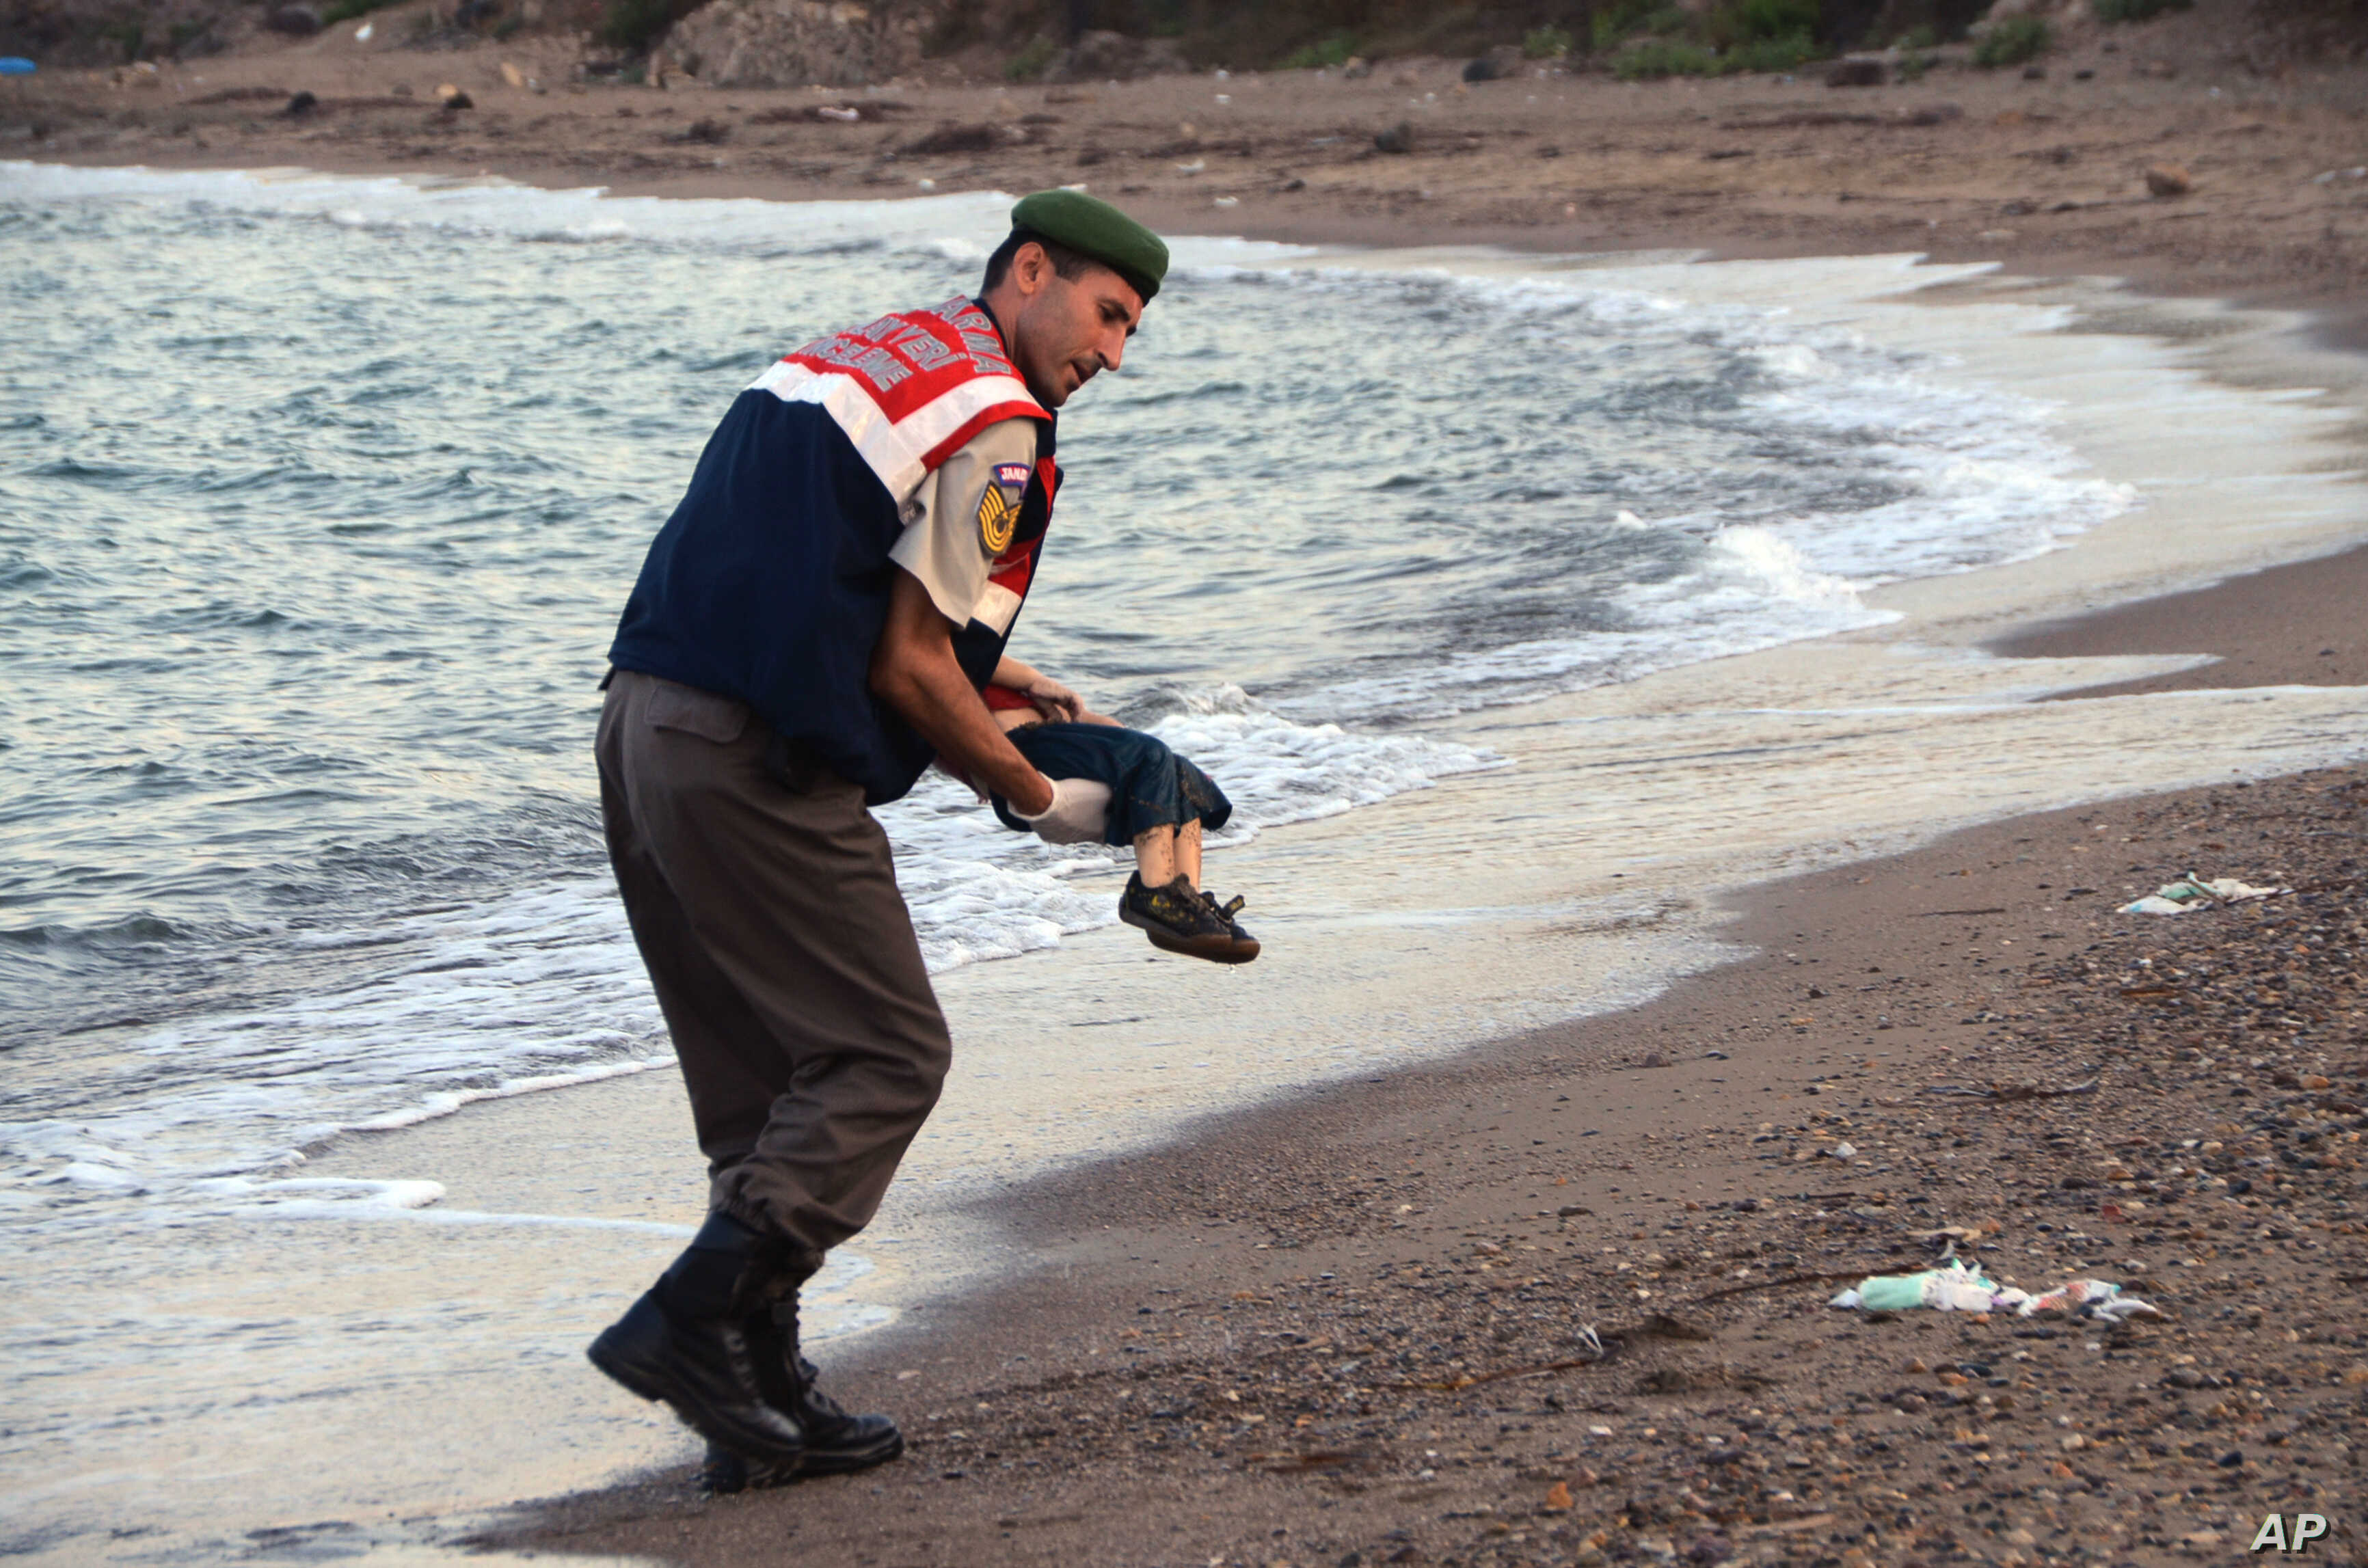 A paramilitary police officer carries the lifeless body of a  migrant child after a number of migrants died and a smaller number  were reported missing after boats carrying them to the Greek island of Kos capsized, near the Turkish resort of Bodrum, ...